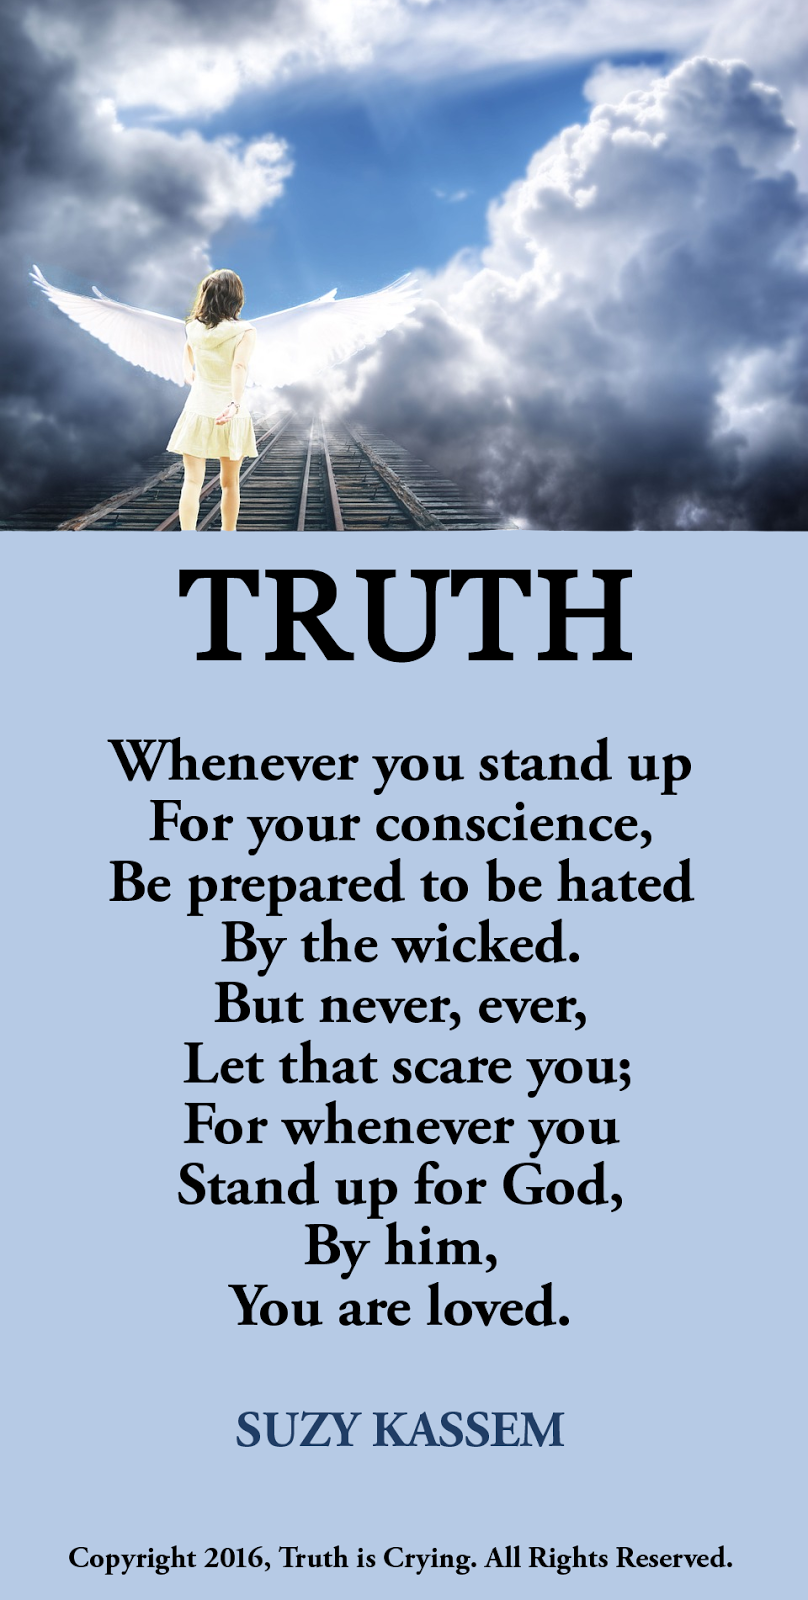 Truth Poem Stand Up for Your Conscience